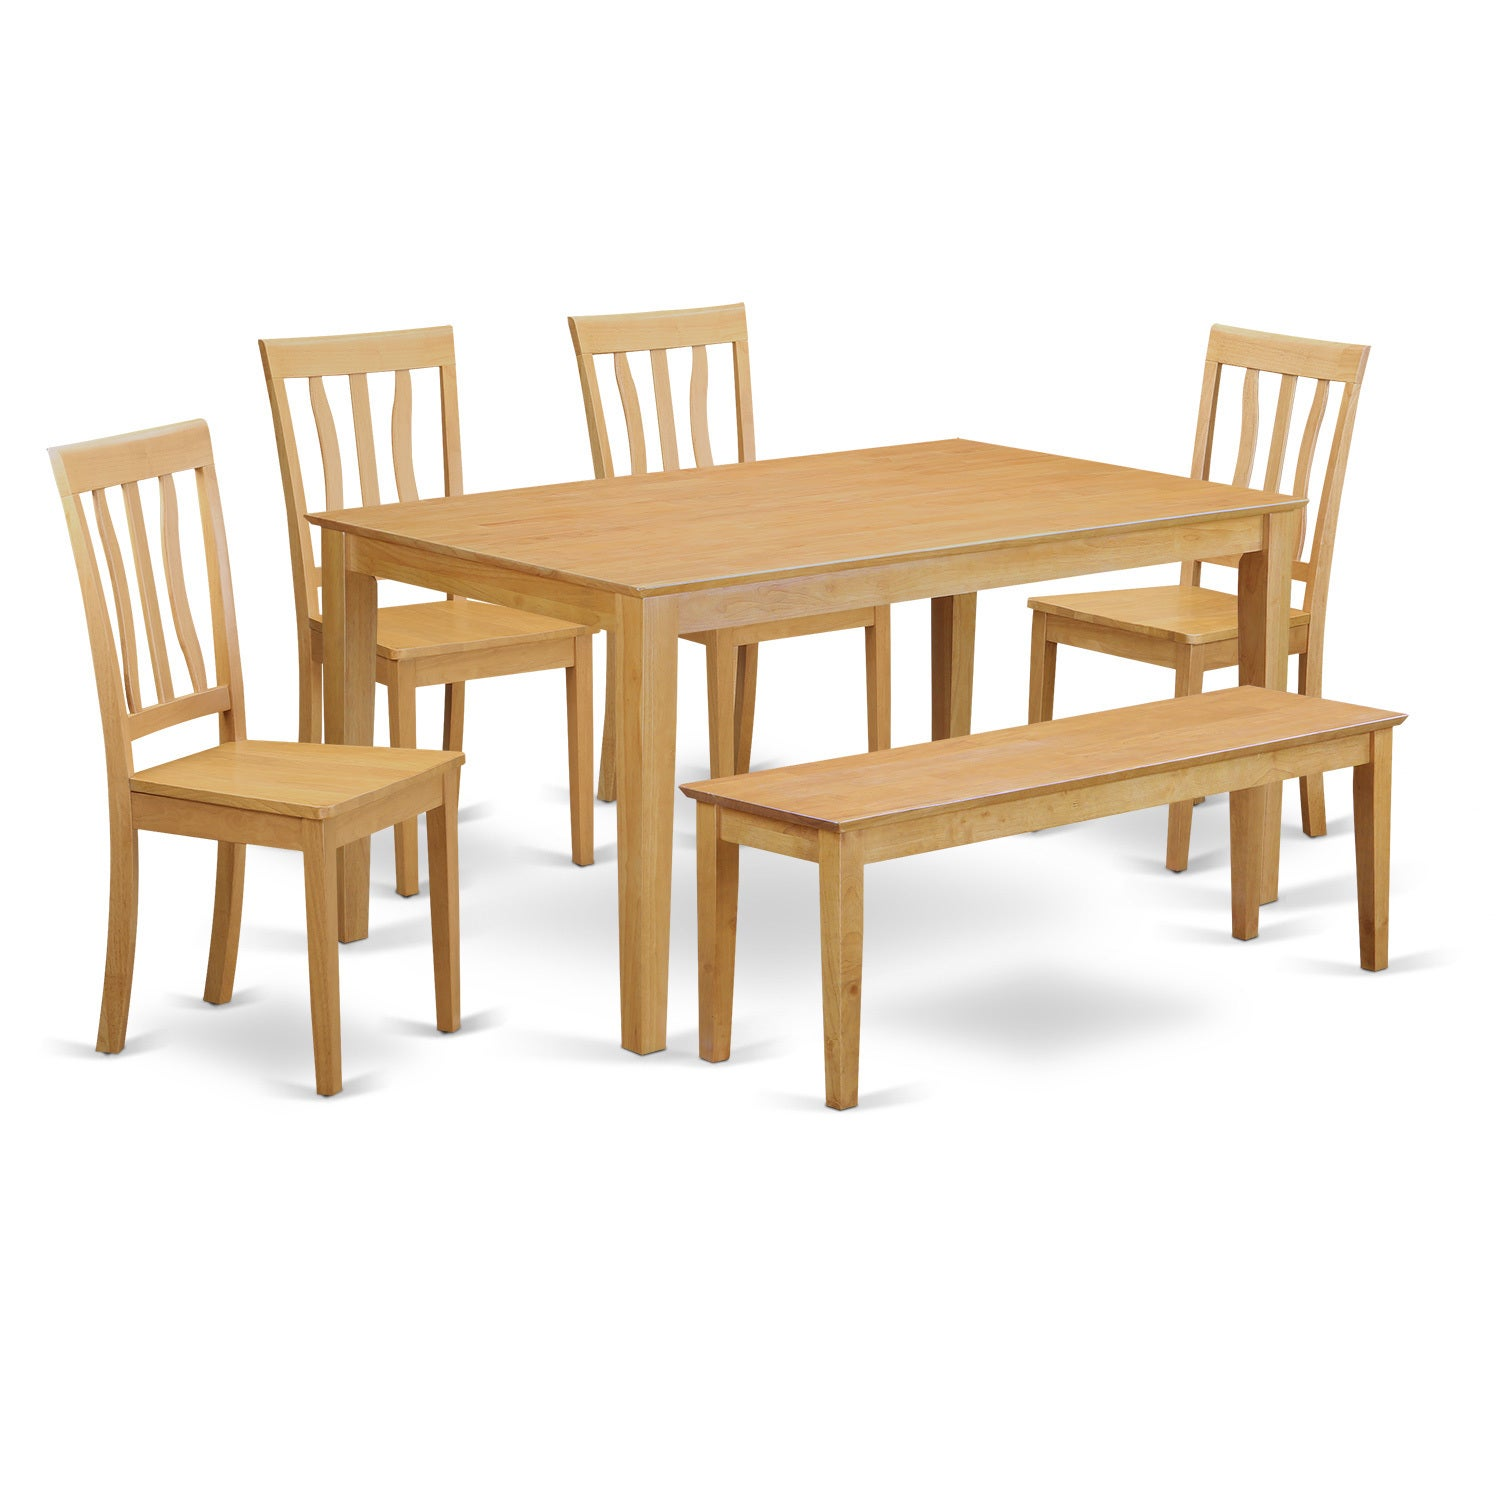 Oak 6-Piece Dining Table Set with Dining Bench (Wood Seat...